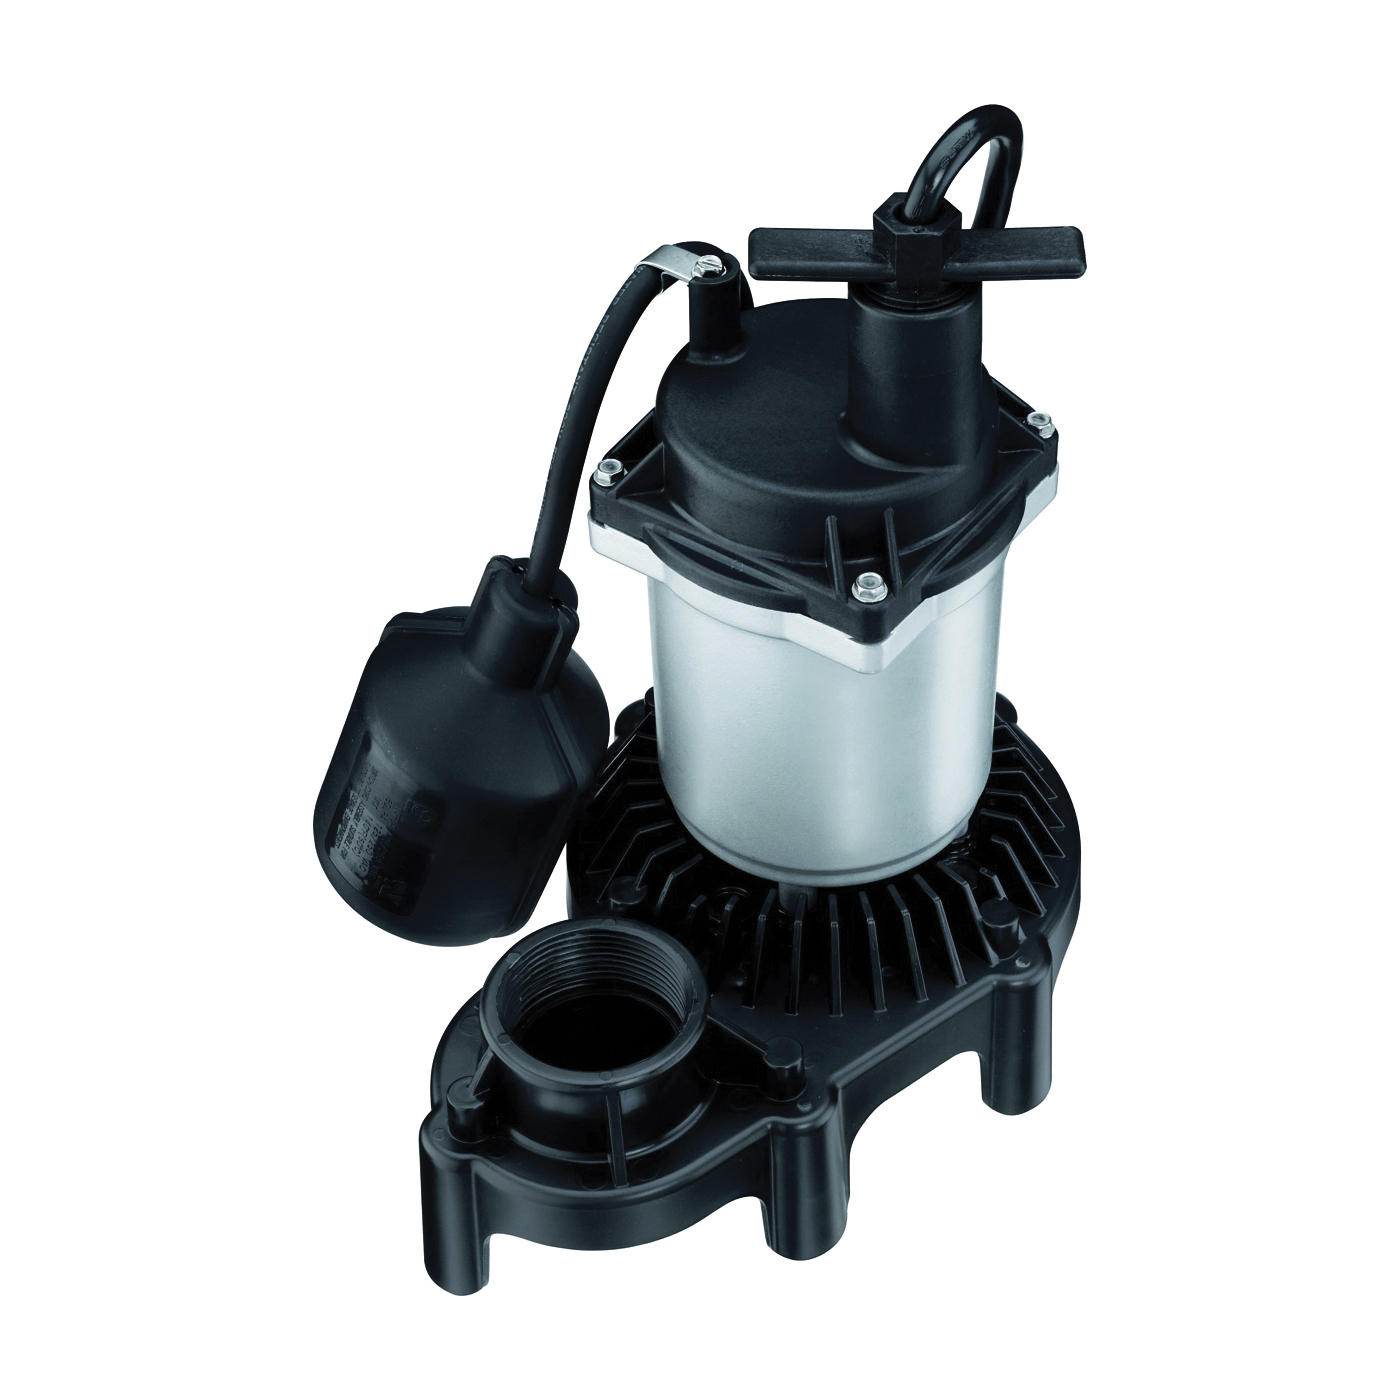 Picture of Sta-Rite Simer 2163 Sump Pump, 1-Phase, 3.9 A, 115 V, 0.33 hp, 1-1/2 in Outlet, 22 ft Max Head, 660 gph